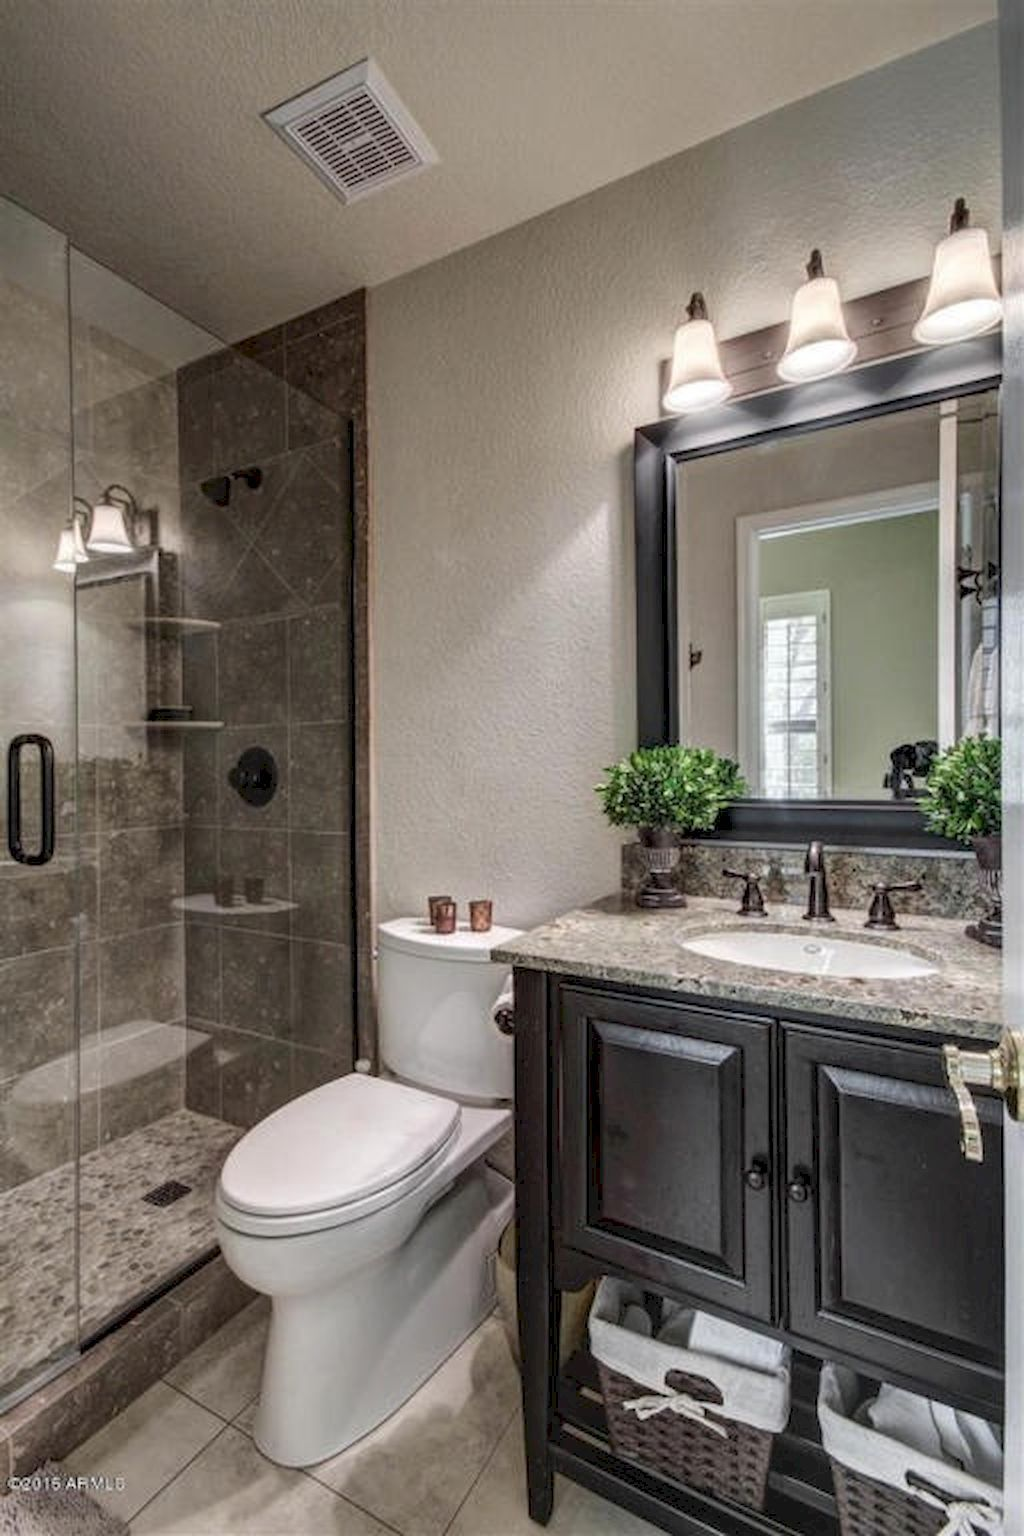 Cool small master bathroom remodel ideas on a budget (49